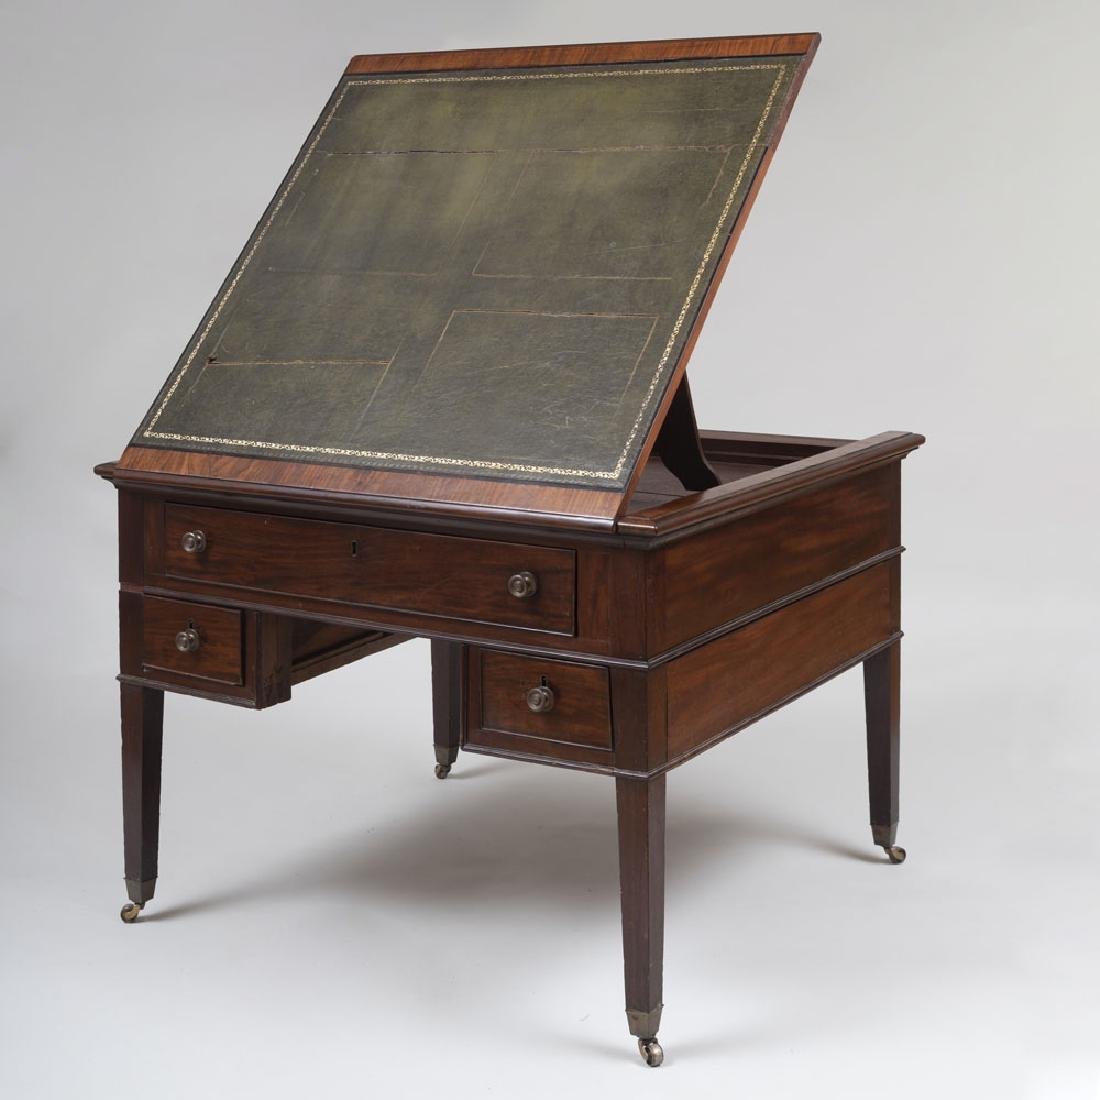 Late George III Mahogany Partner's Desk